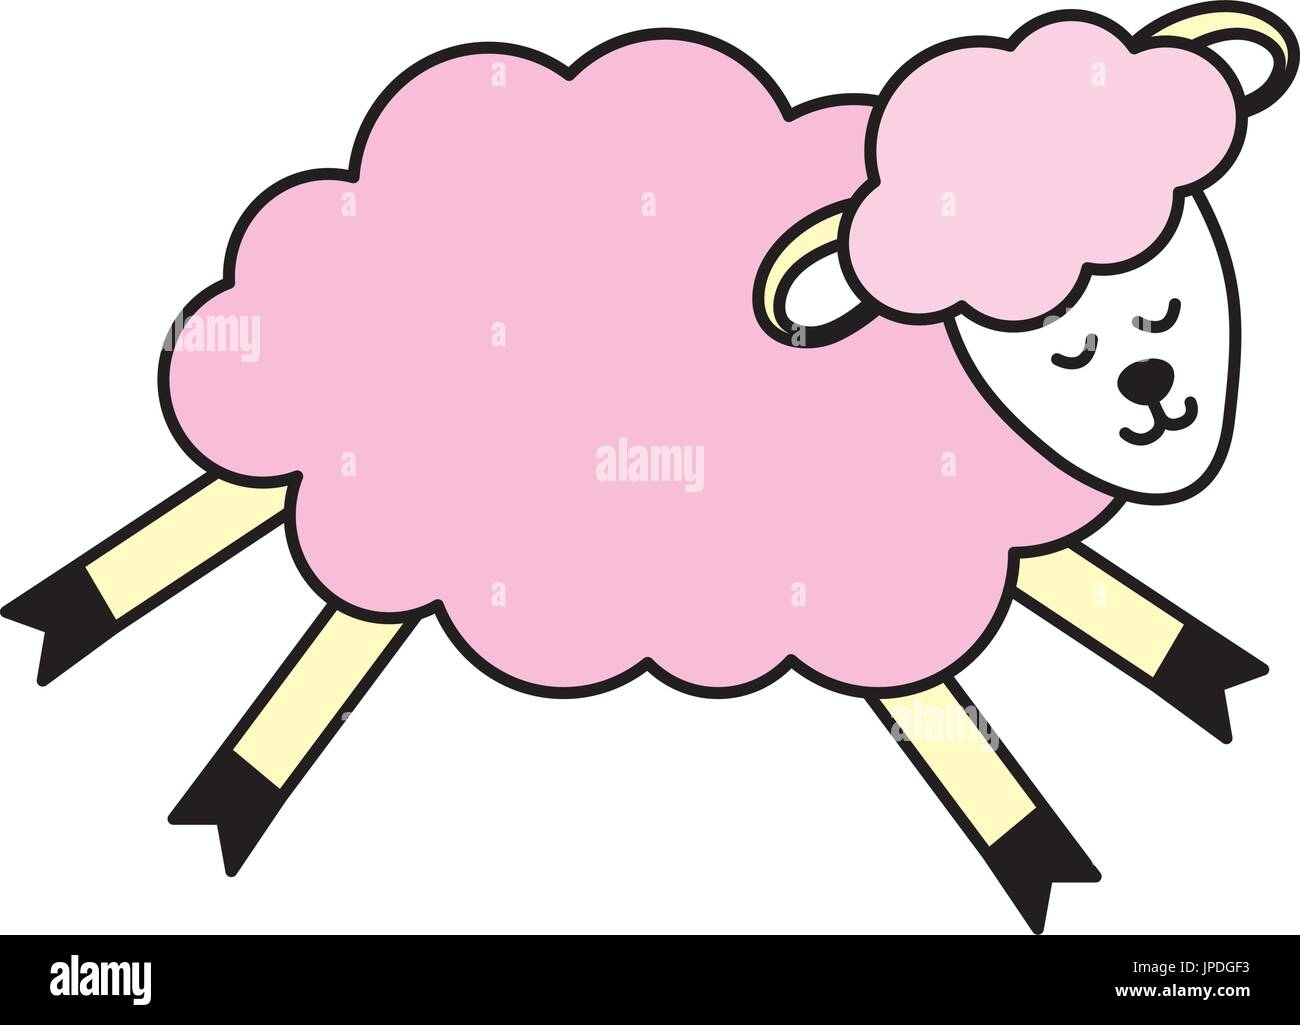 cute sheep animal with wool design - Stock Vector